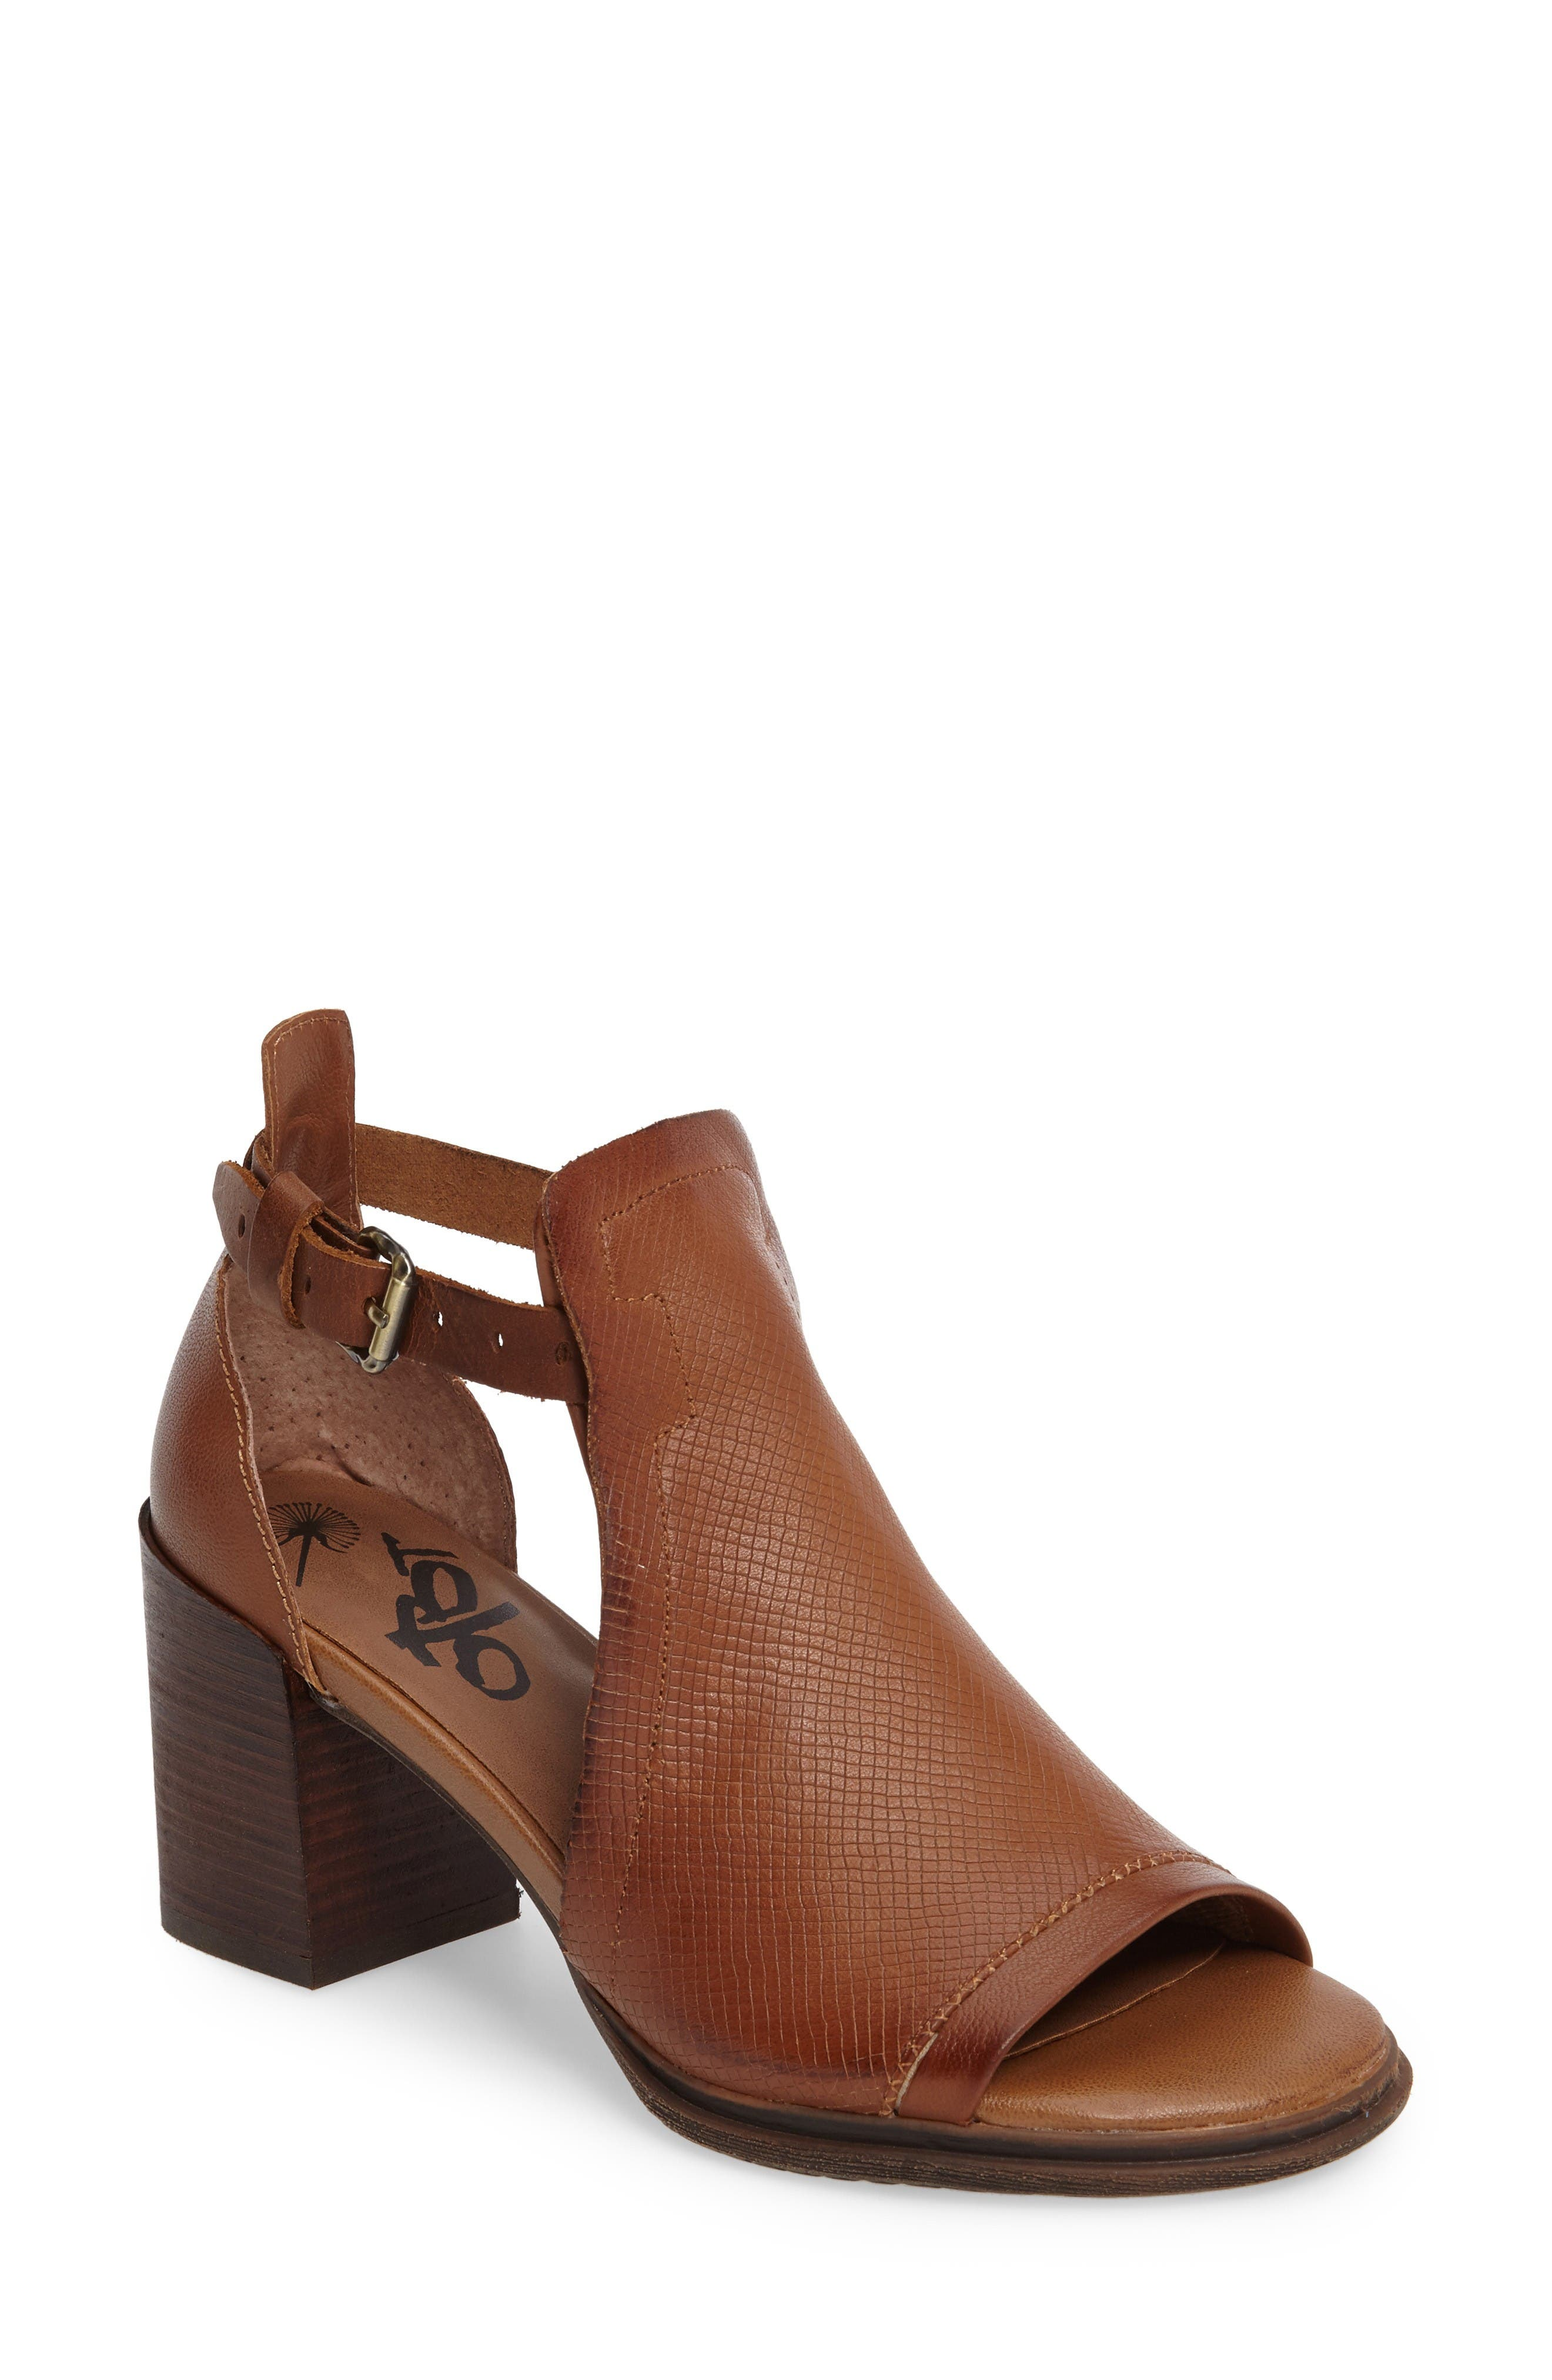 Metaphor Open Side Bootie,                             Main thumbnail 1, color,                             Medium Brown Leather